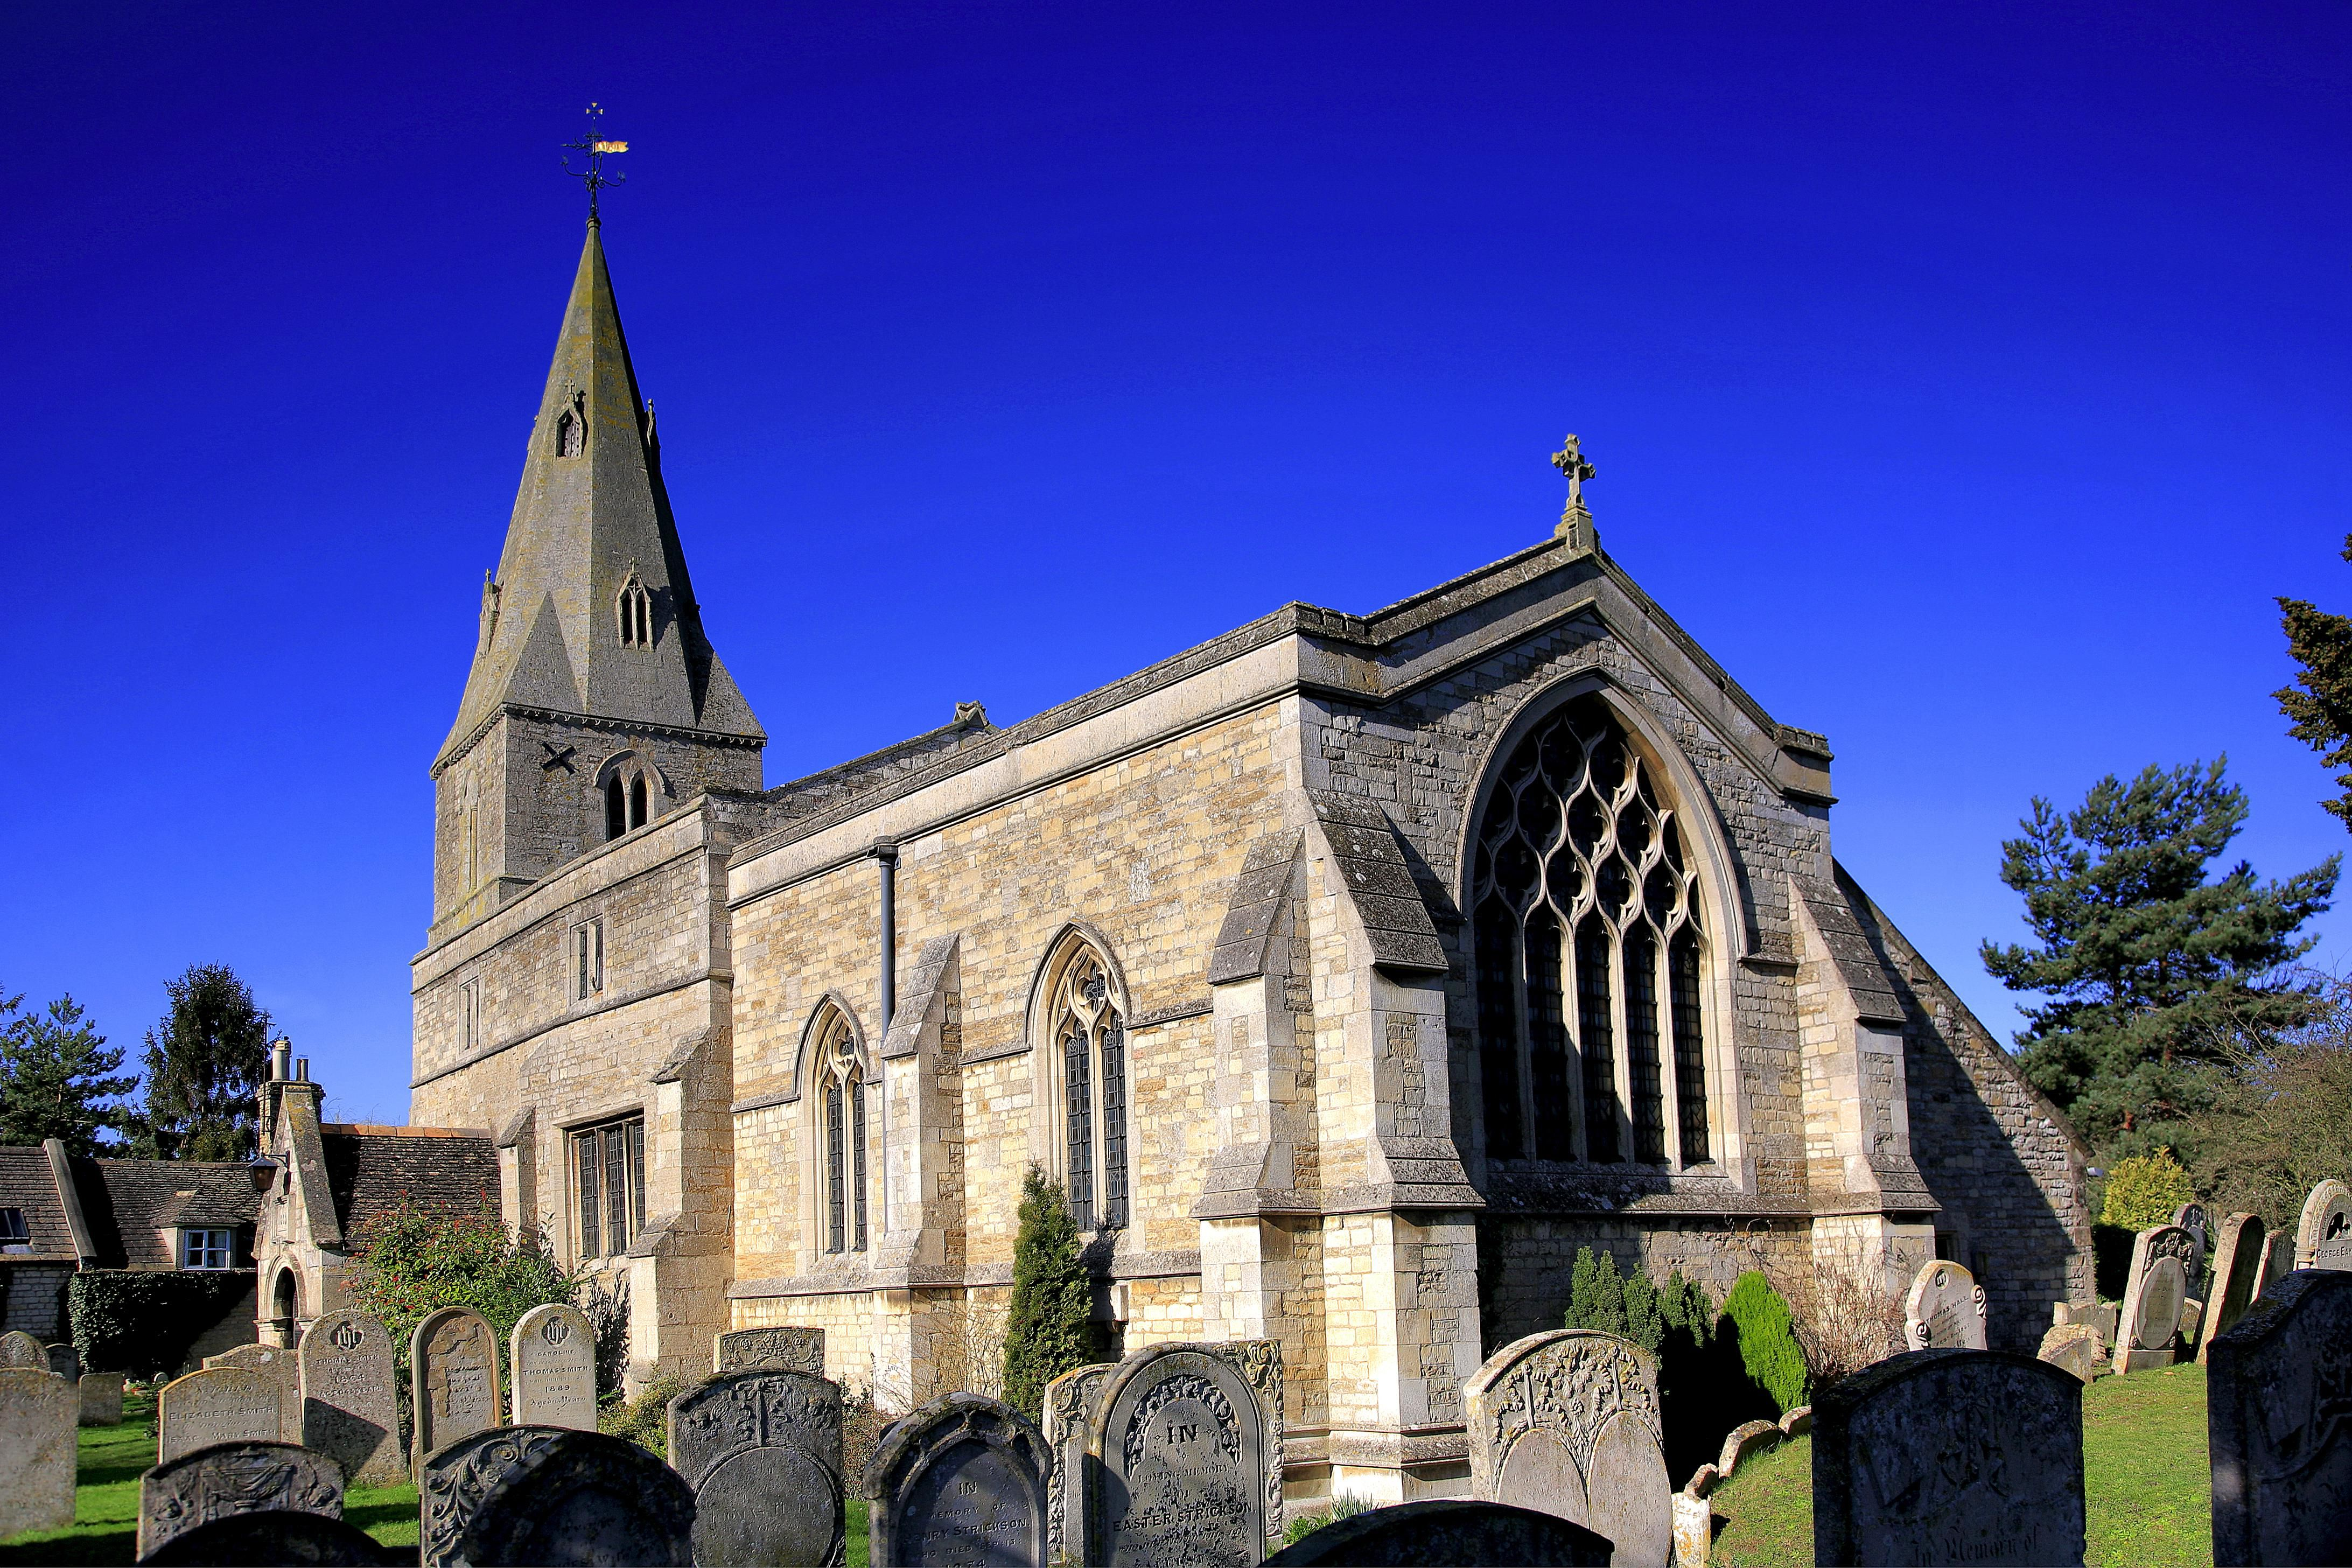 The parish church of St. Mary the Virgin dating back to the 11th Century, at Wansford village in Cambridgeshire.